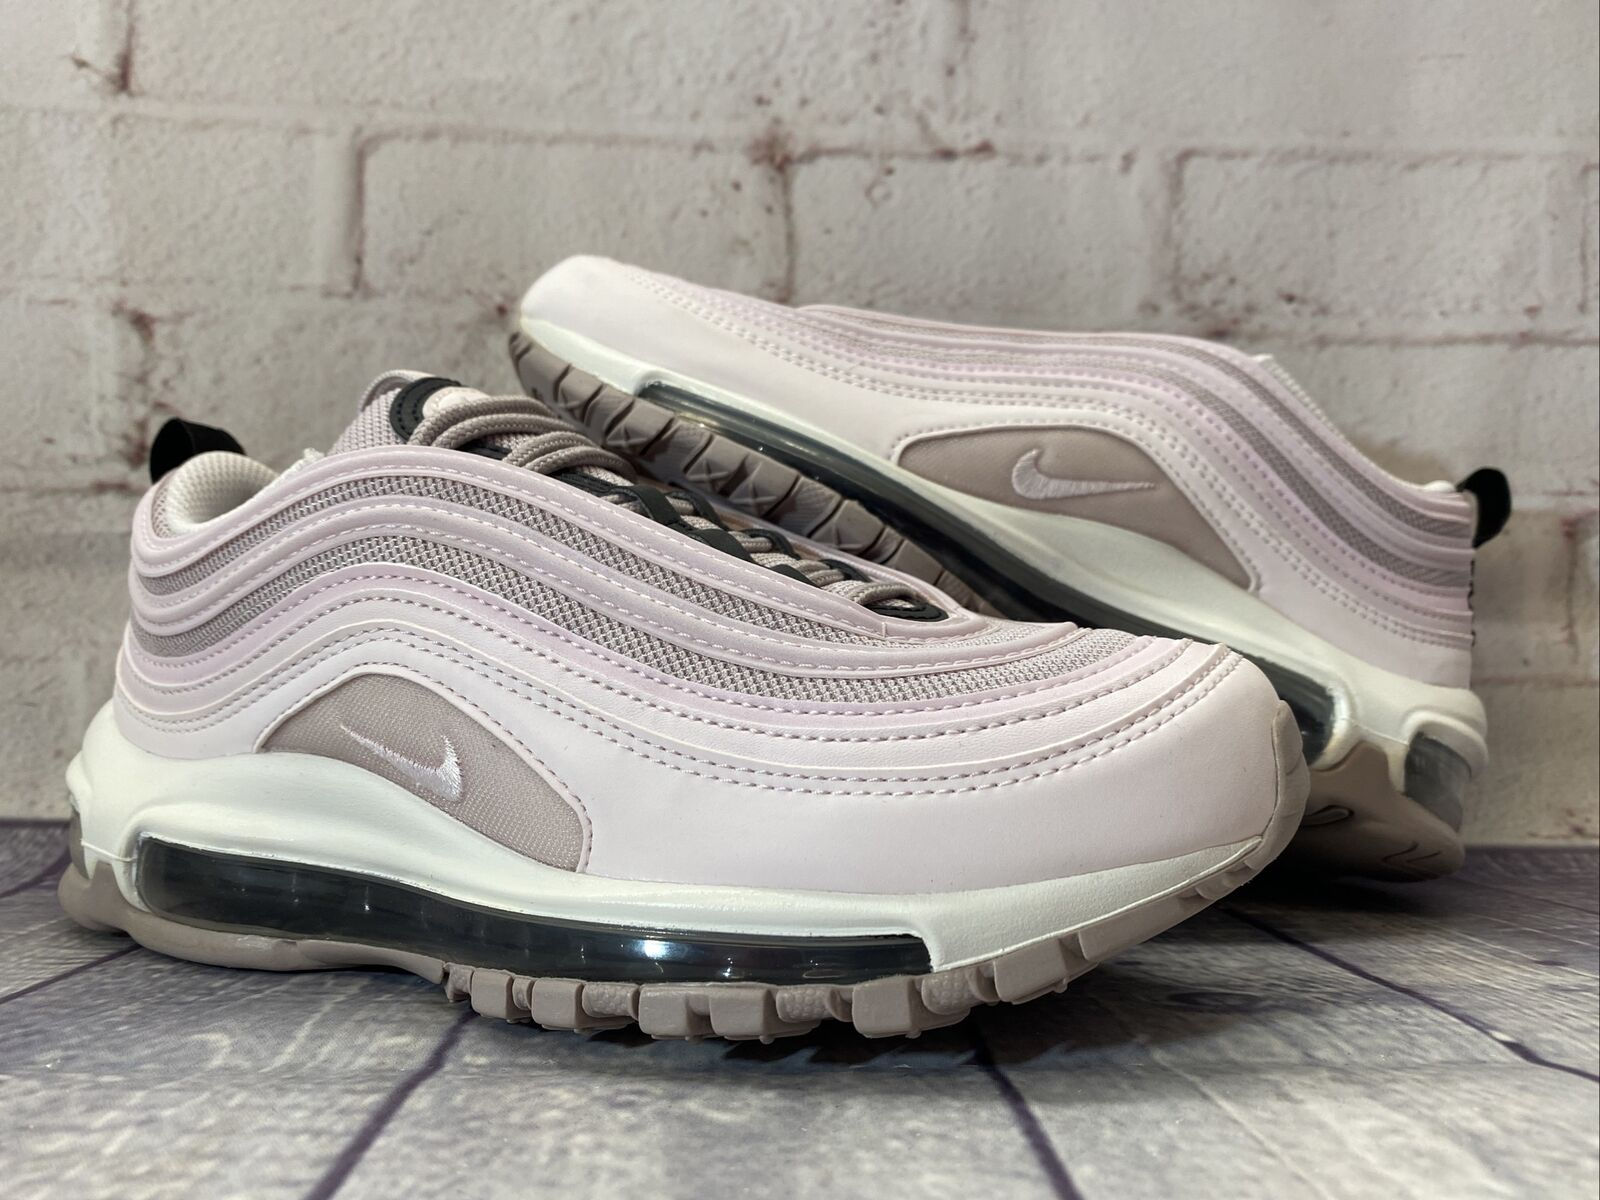 Size 7 - Nike Air Max 97 Pale Pink 2019 for sale online | eBay